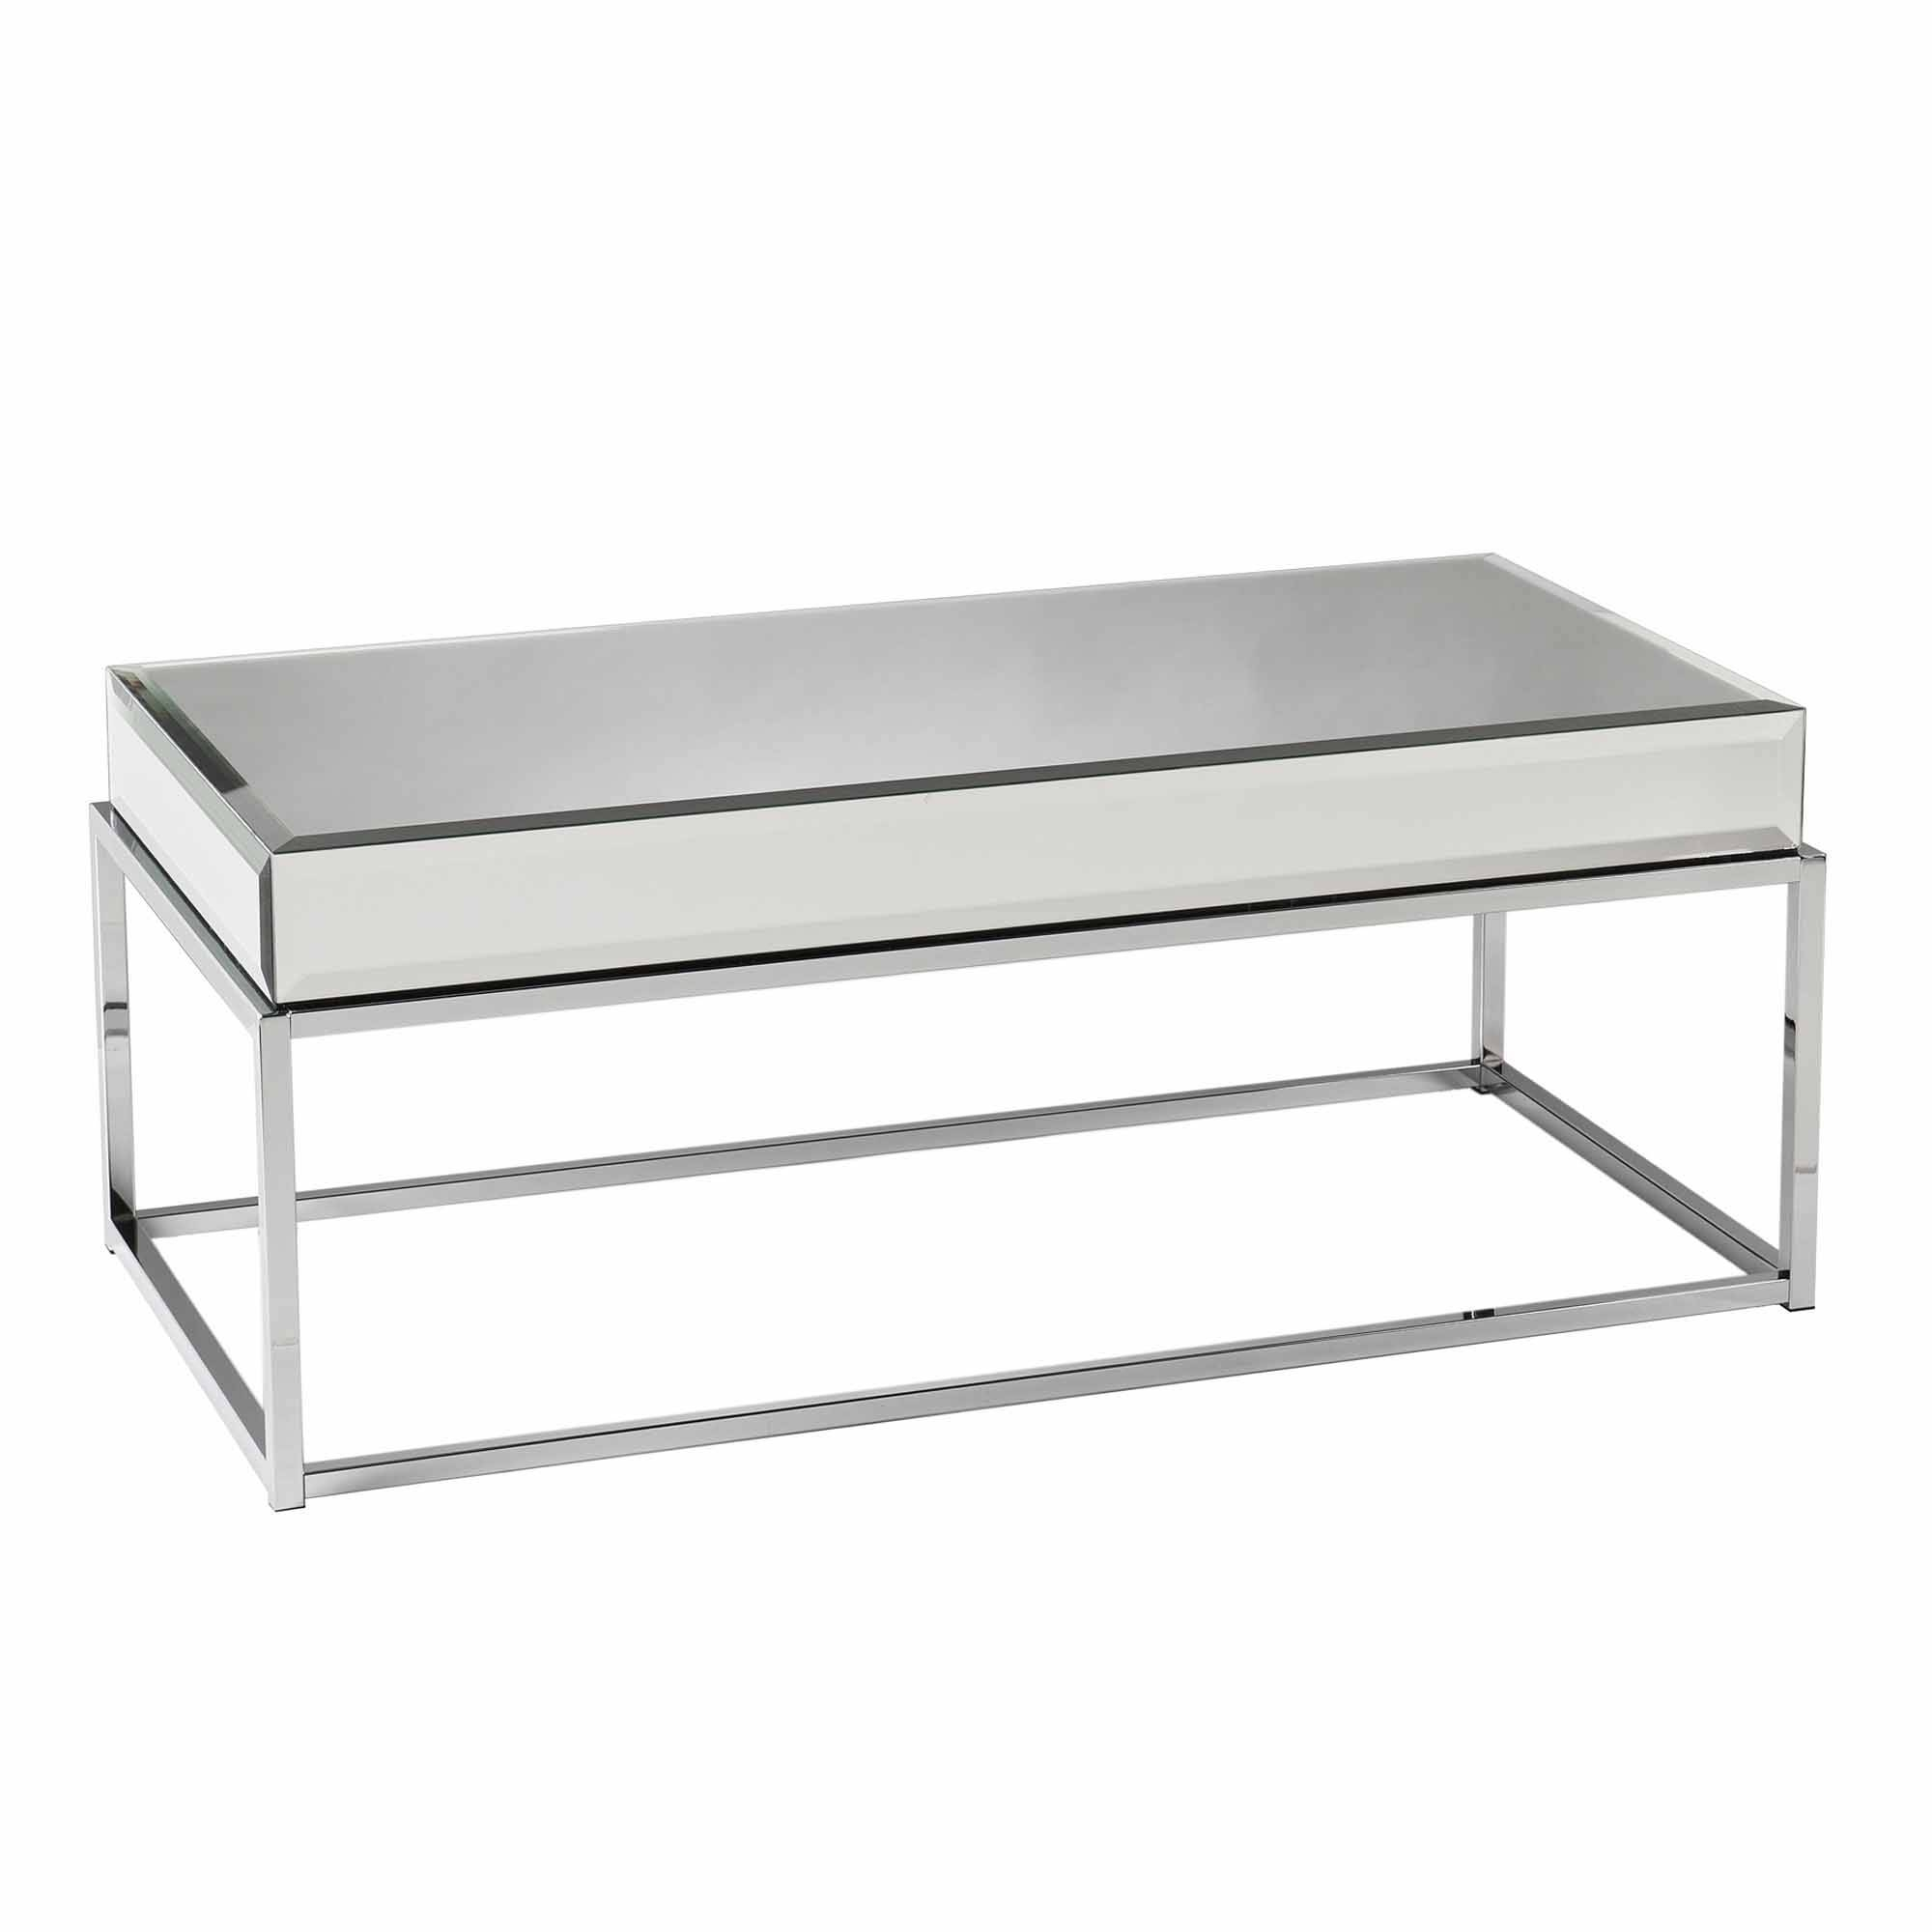 Stassi Coffee Table, Mirrored - Walmart inside Mirrored Coffee Tables (Image 28 of 30)